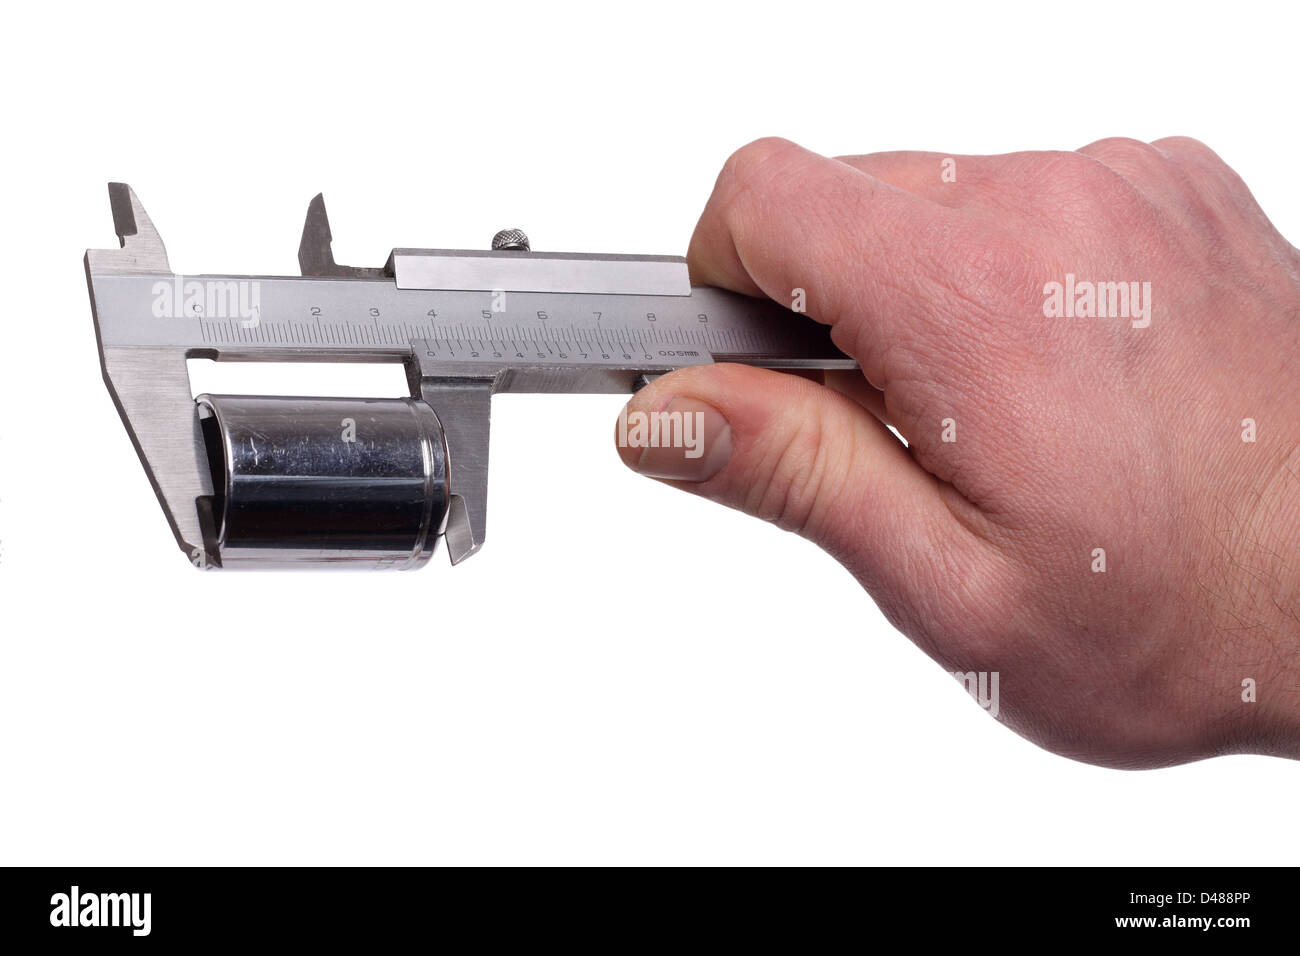 Measuring a metall objekt with a caliper. - Stock Image